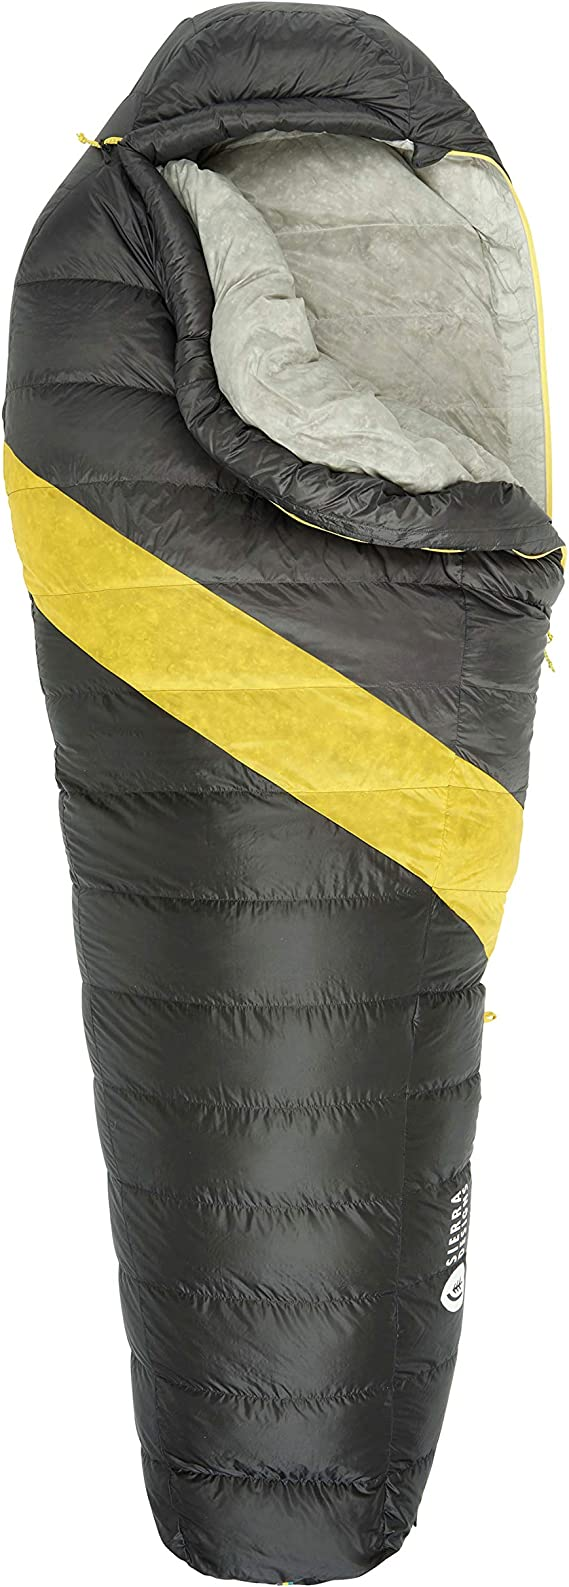 Sierra Designs Nitro 0 Degree DriDown Sleeping Bag Ultralight Down Sleeping Bag for Backpacking and Camping for Men & Women